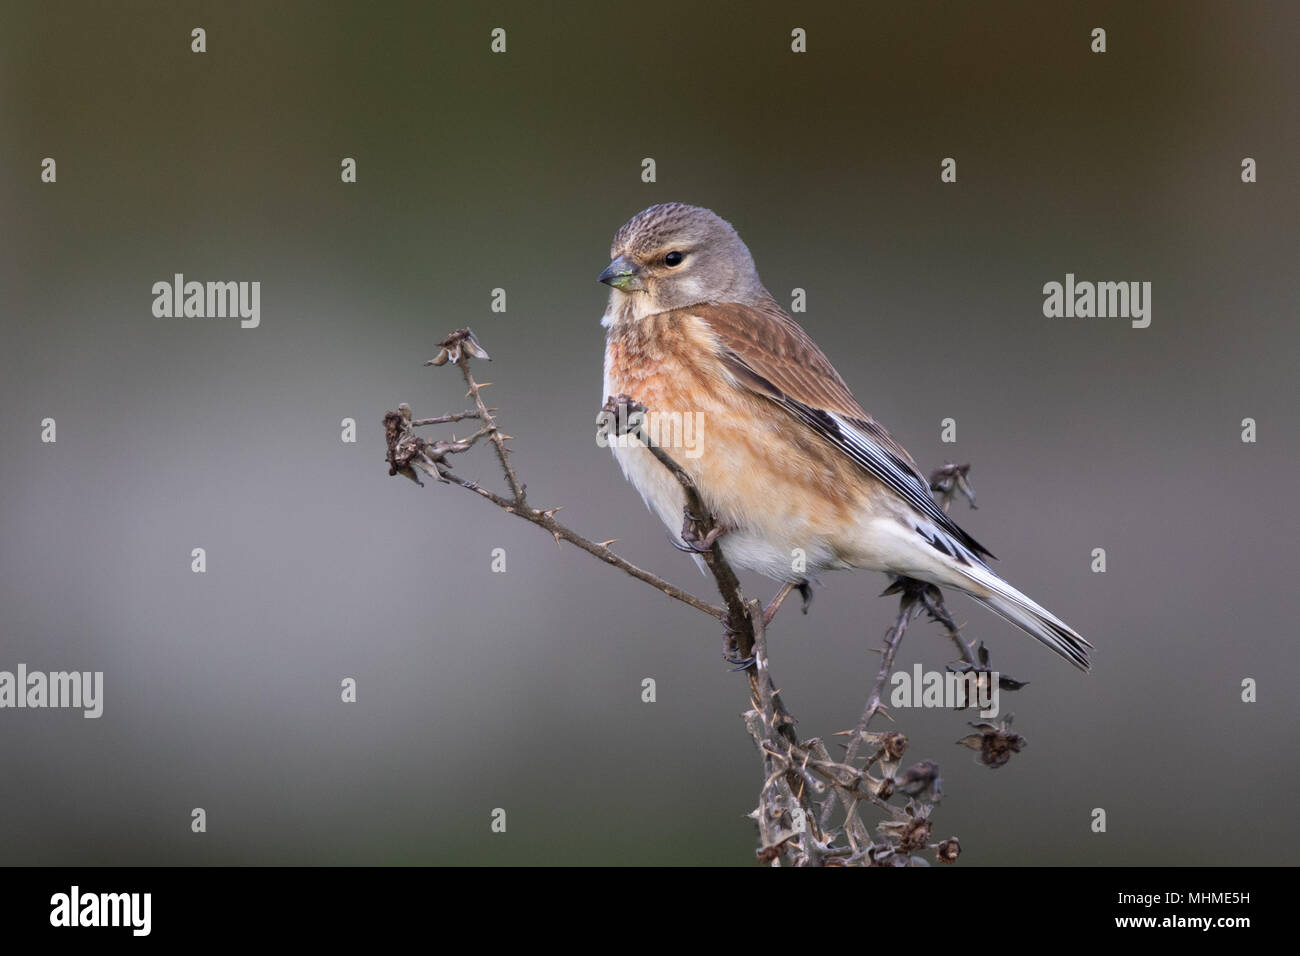 female Common Linnet (Linaria cannabina) perched on a dead plant stem - Stock Image